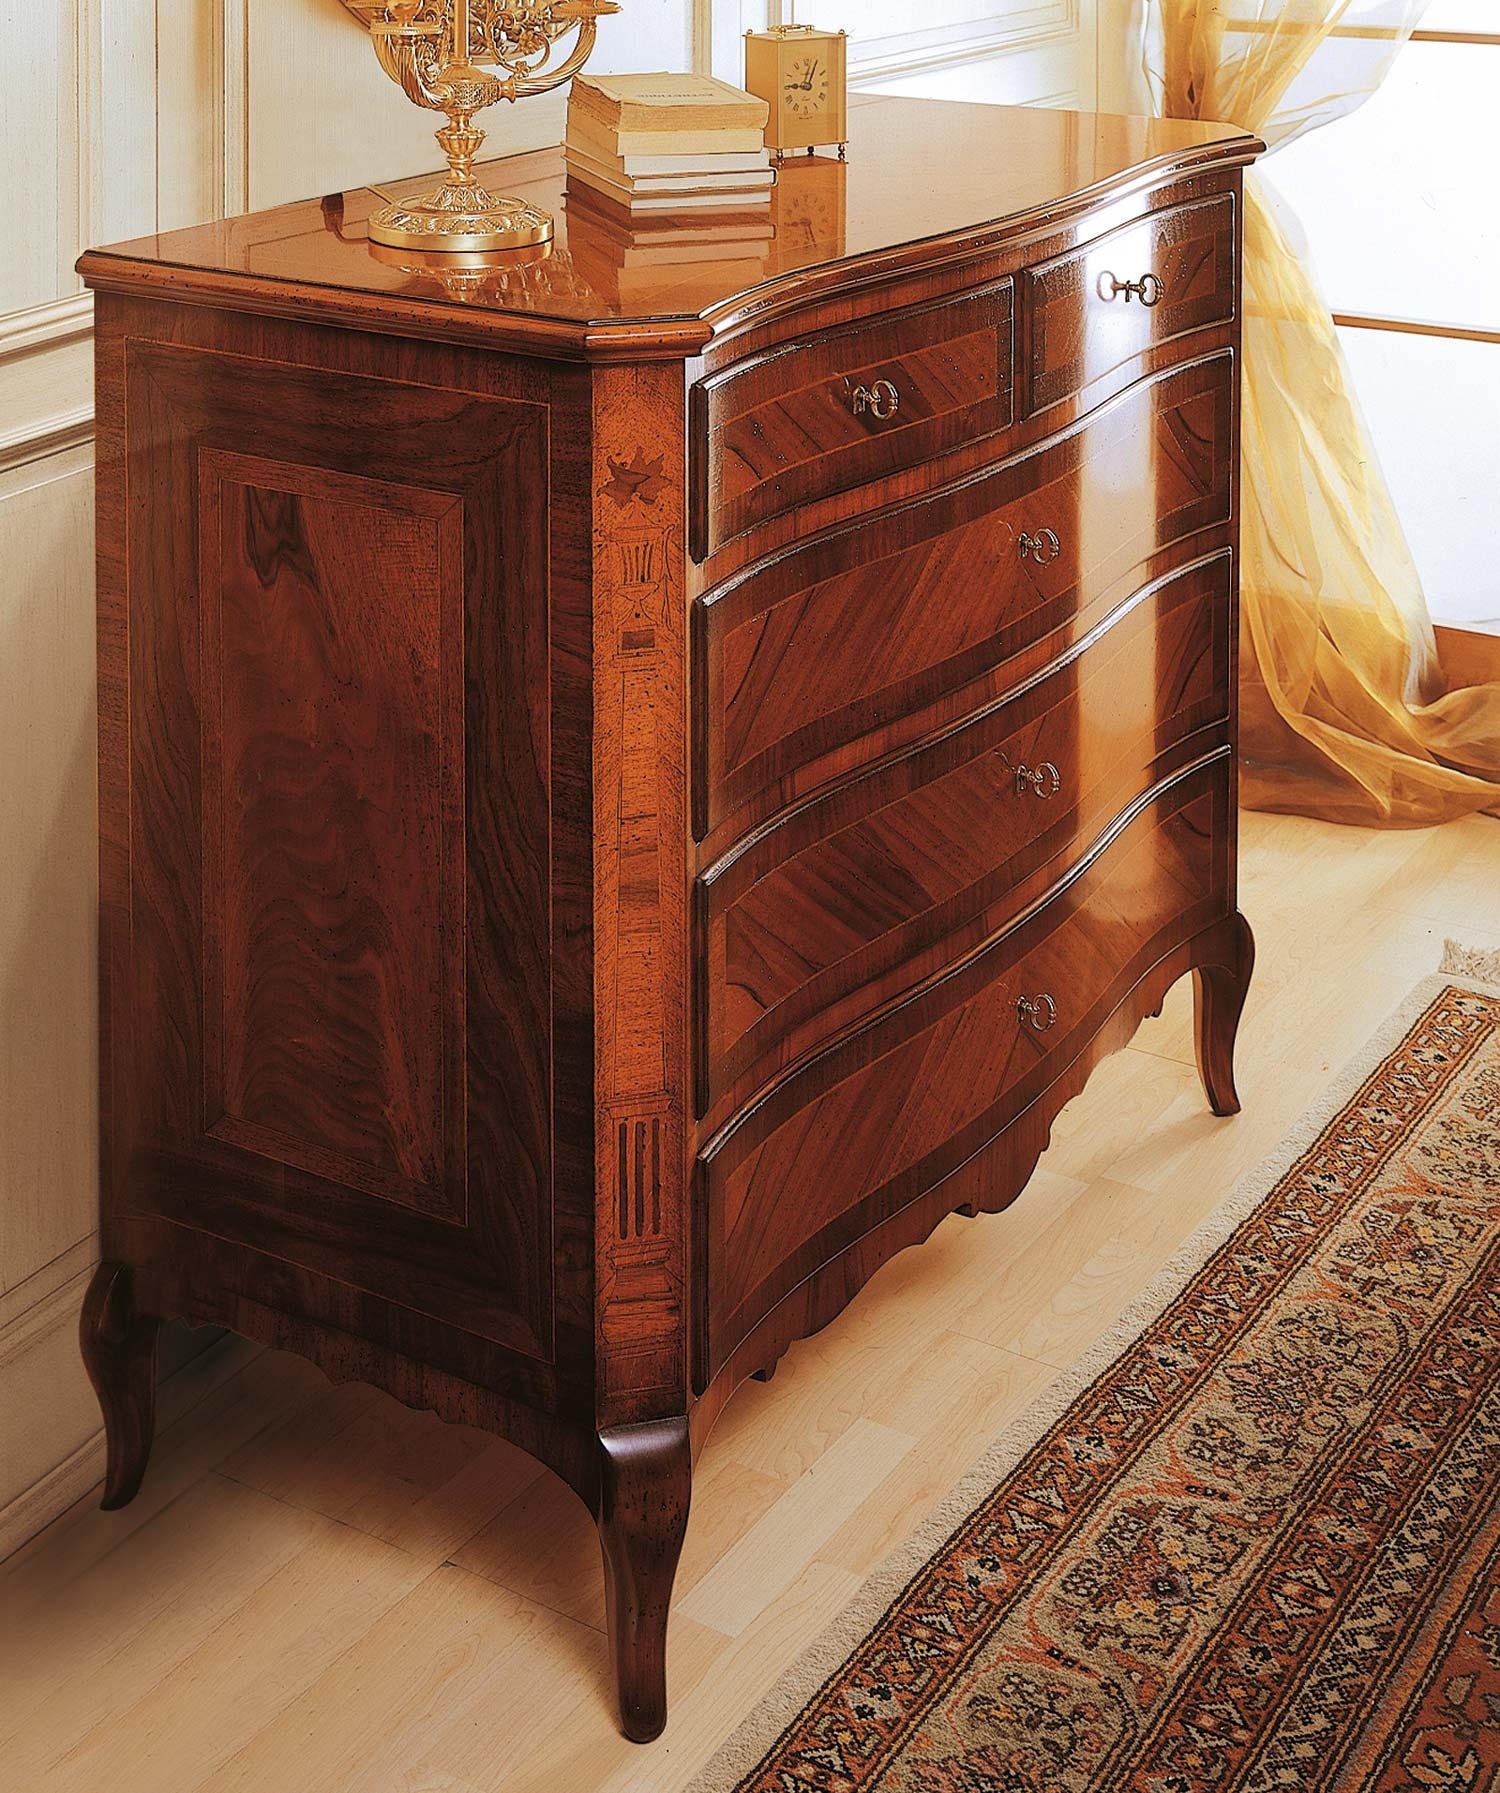 Classic 19th Century French Bedroom Chest Of Drawers In